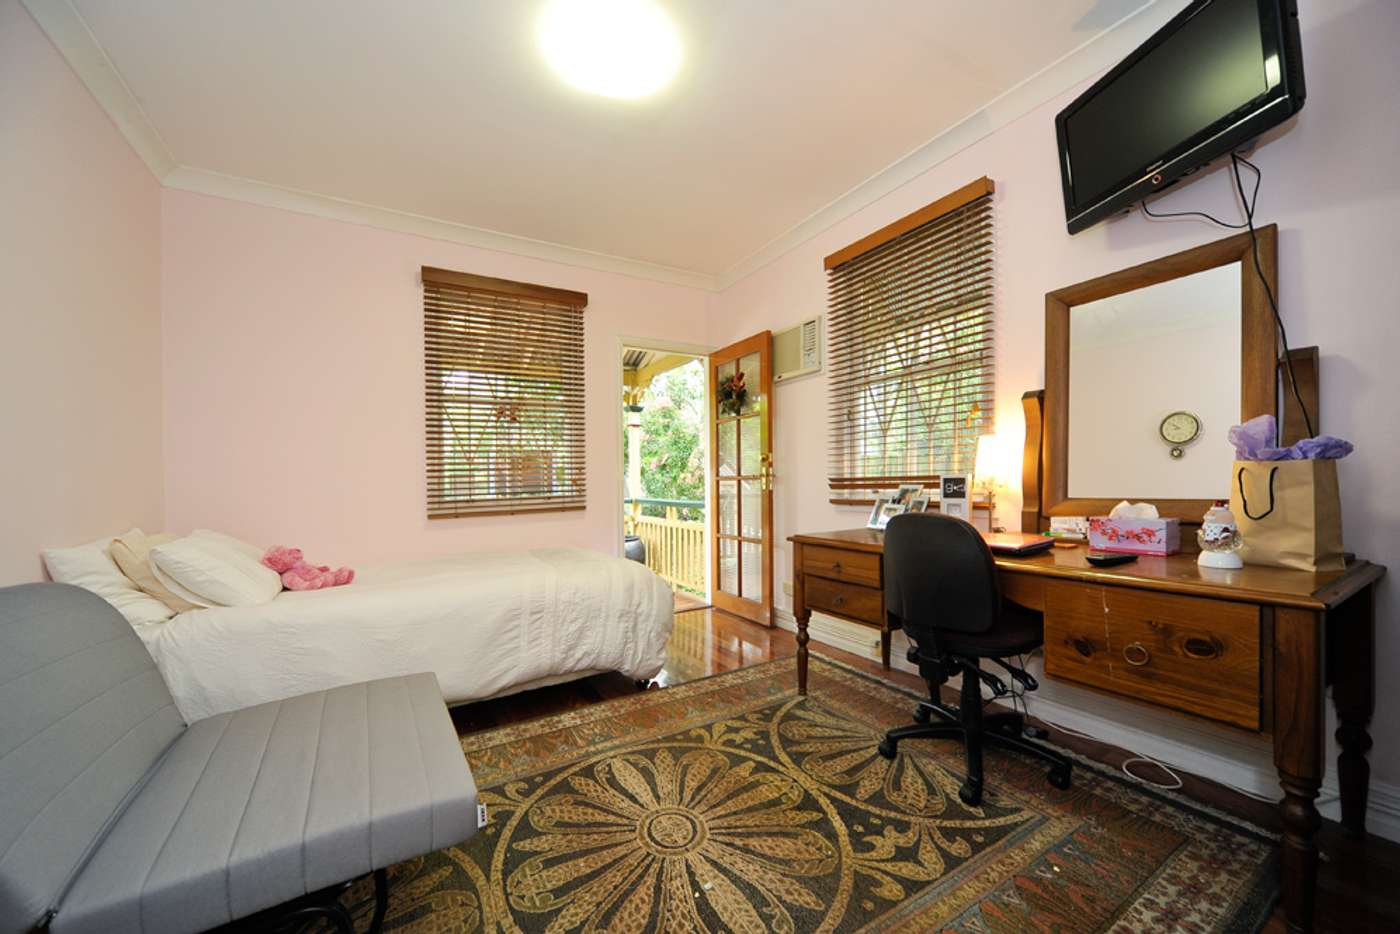 Main view of Homely studio listing, 8 Challinor, Auchenflower QLD 4066